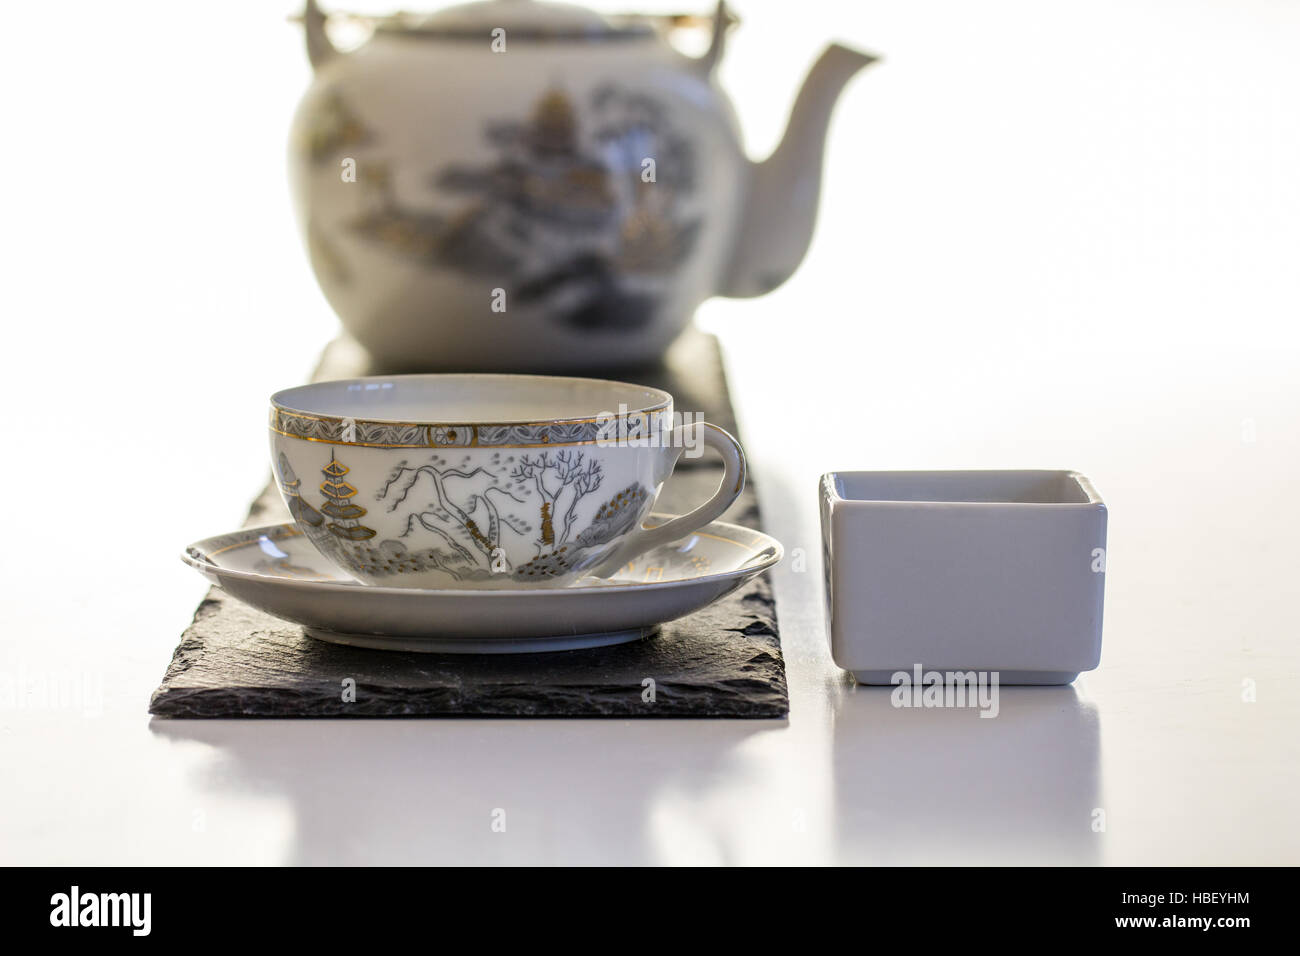 Its tea time! - Stock Image